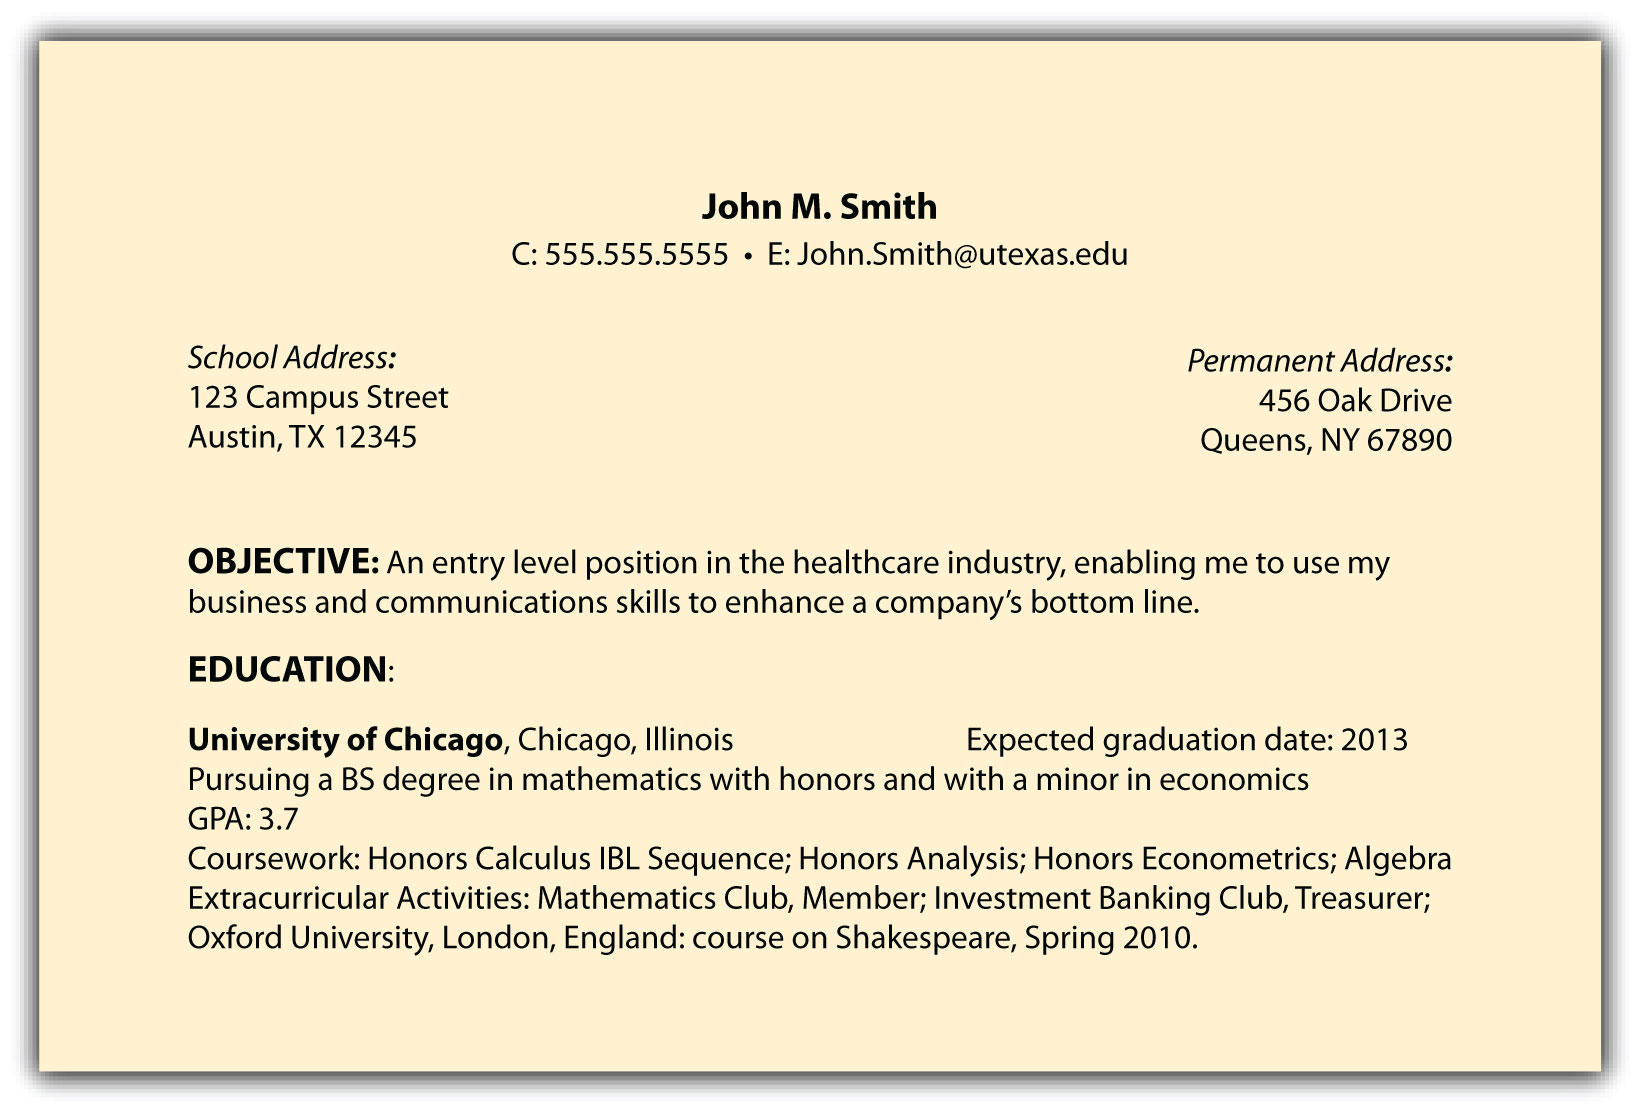 ... field. Resume Styles Reverse Chronological Resume: ... Access Document